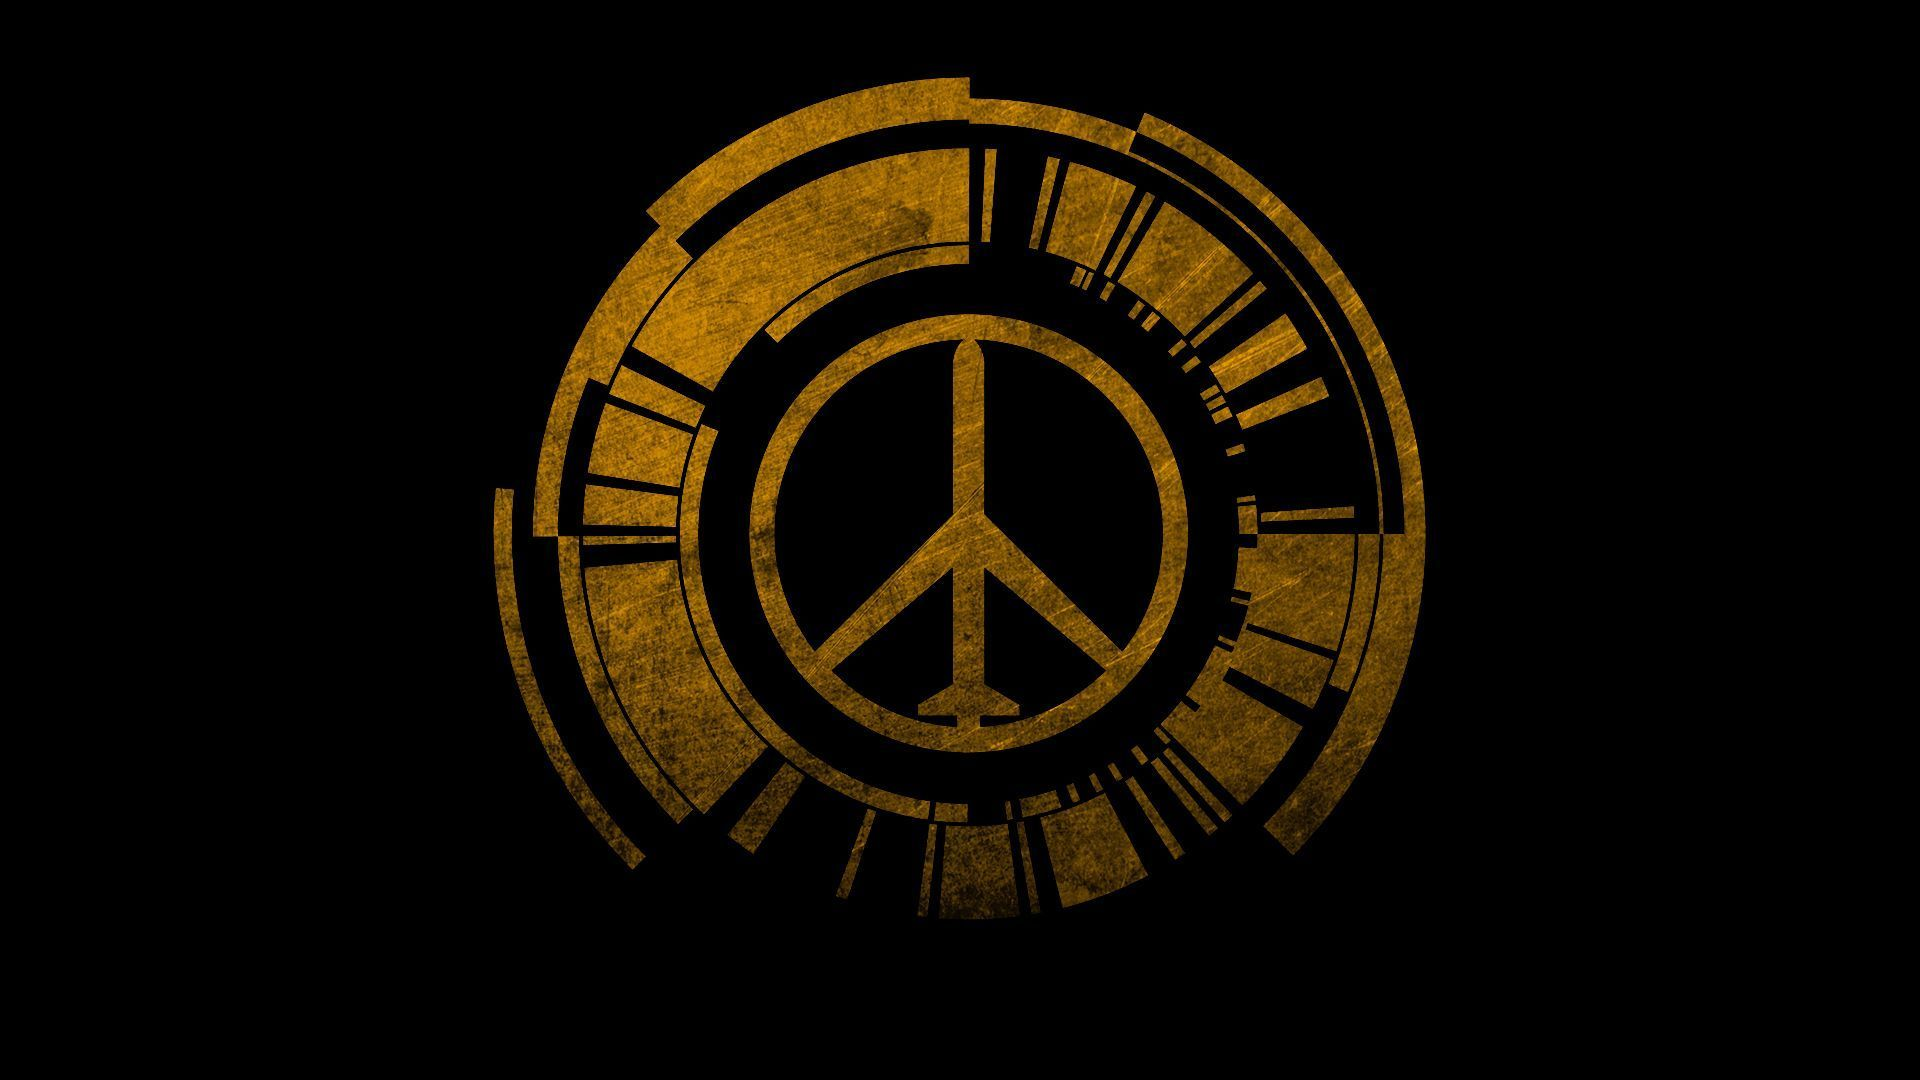 55+ Peace Sign Wallpapers Download at WallpaperBro